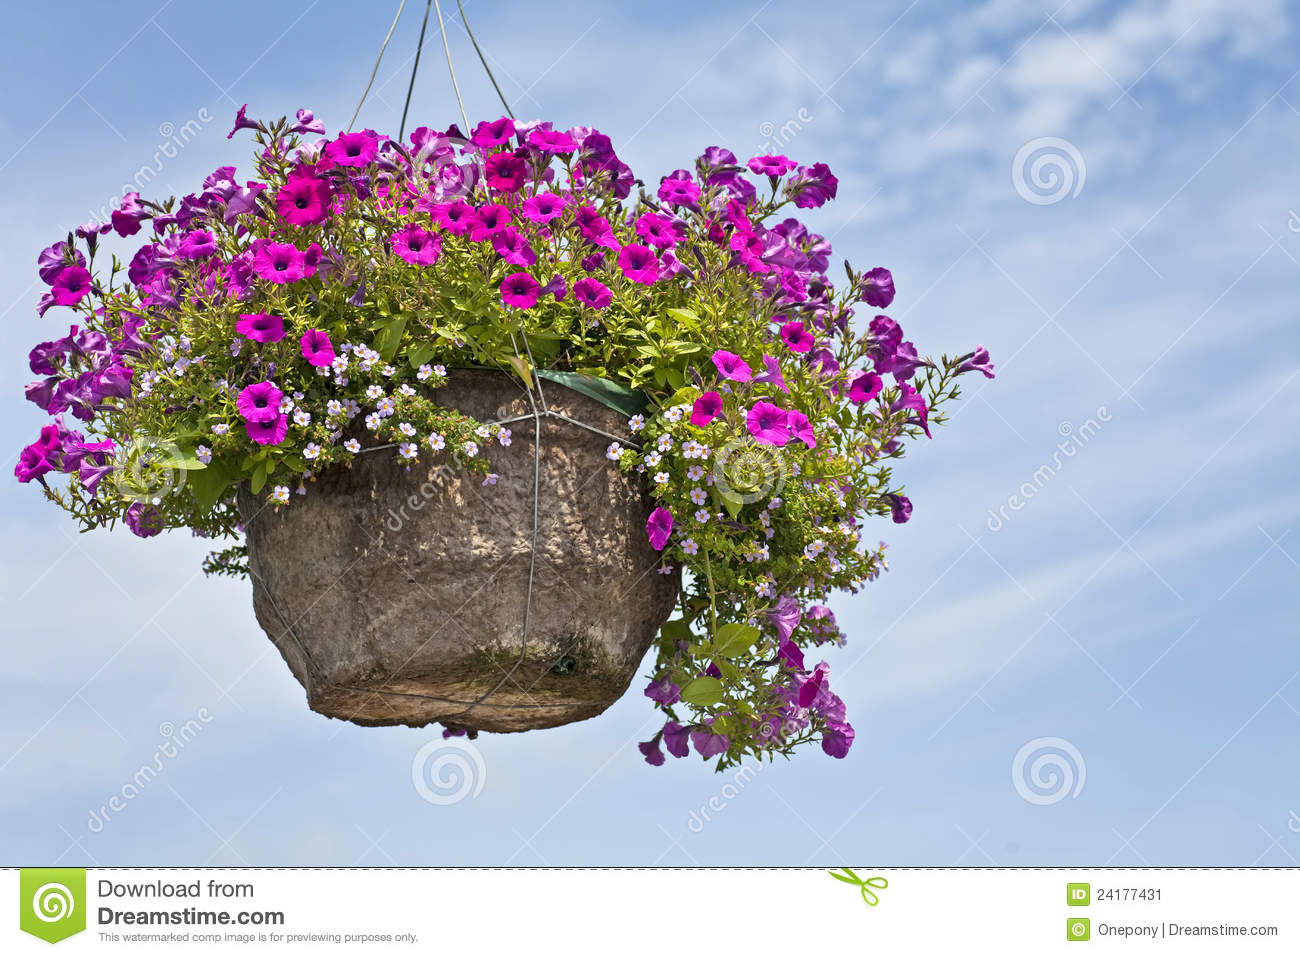 Petunia Hanging Basket Stock Photos, Images, & Pictures.